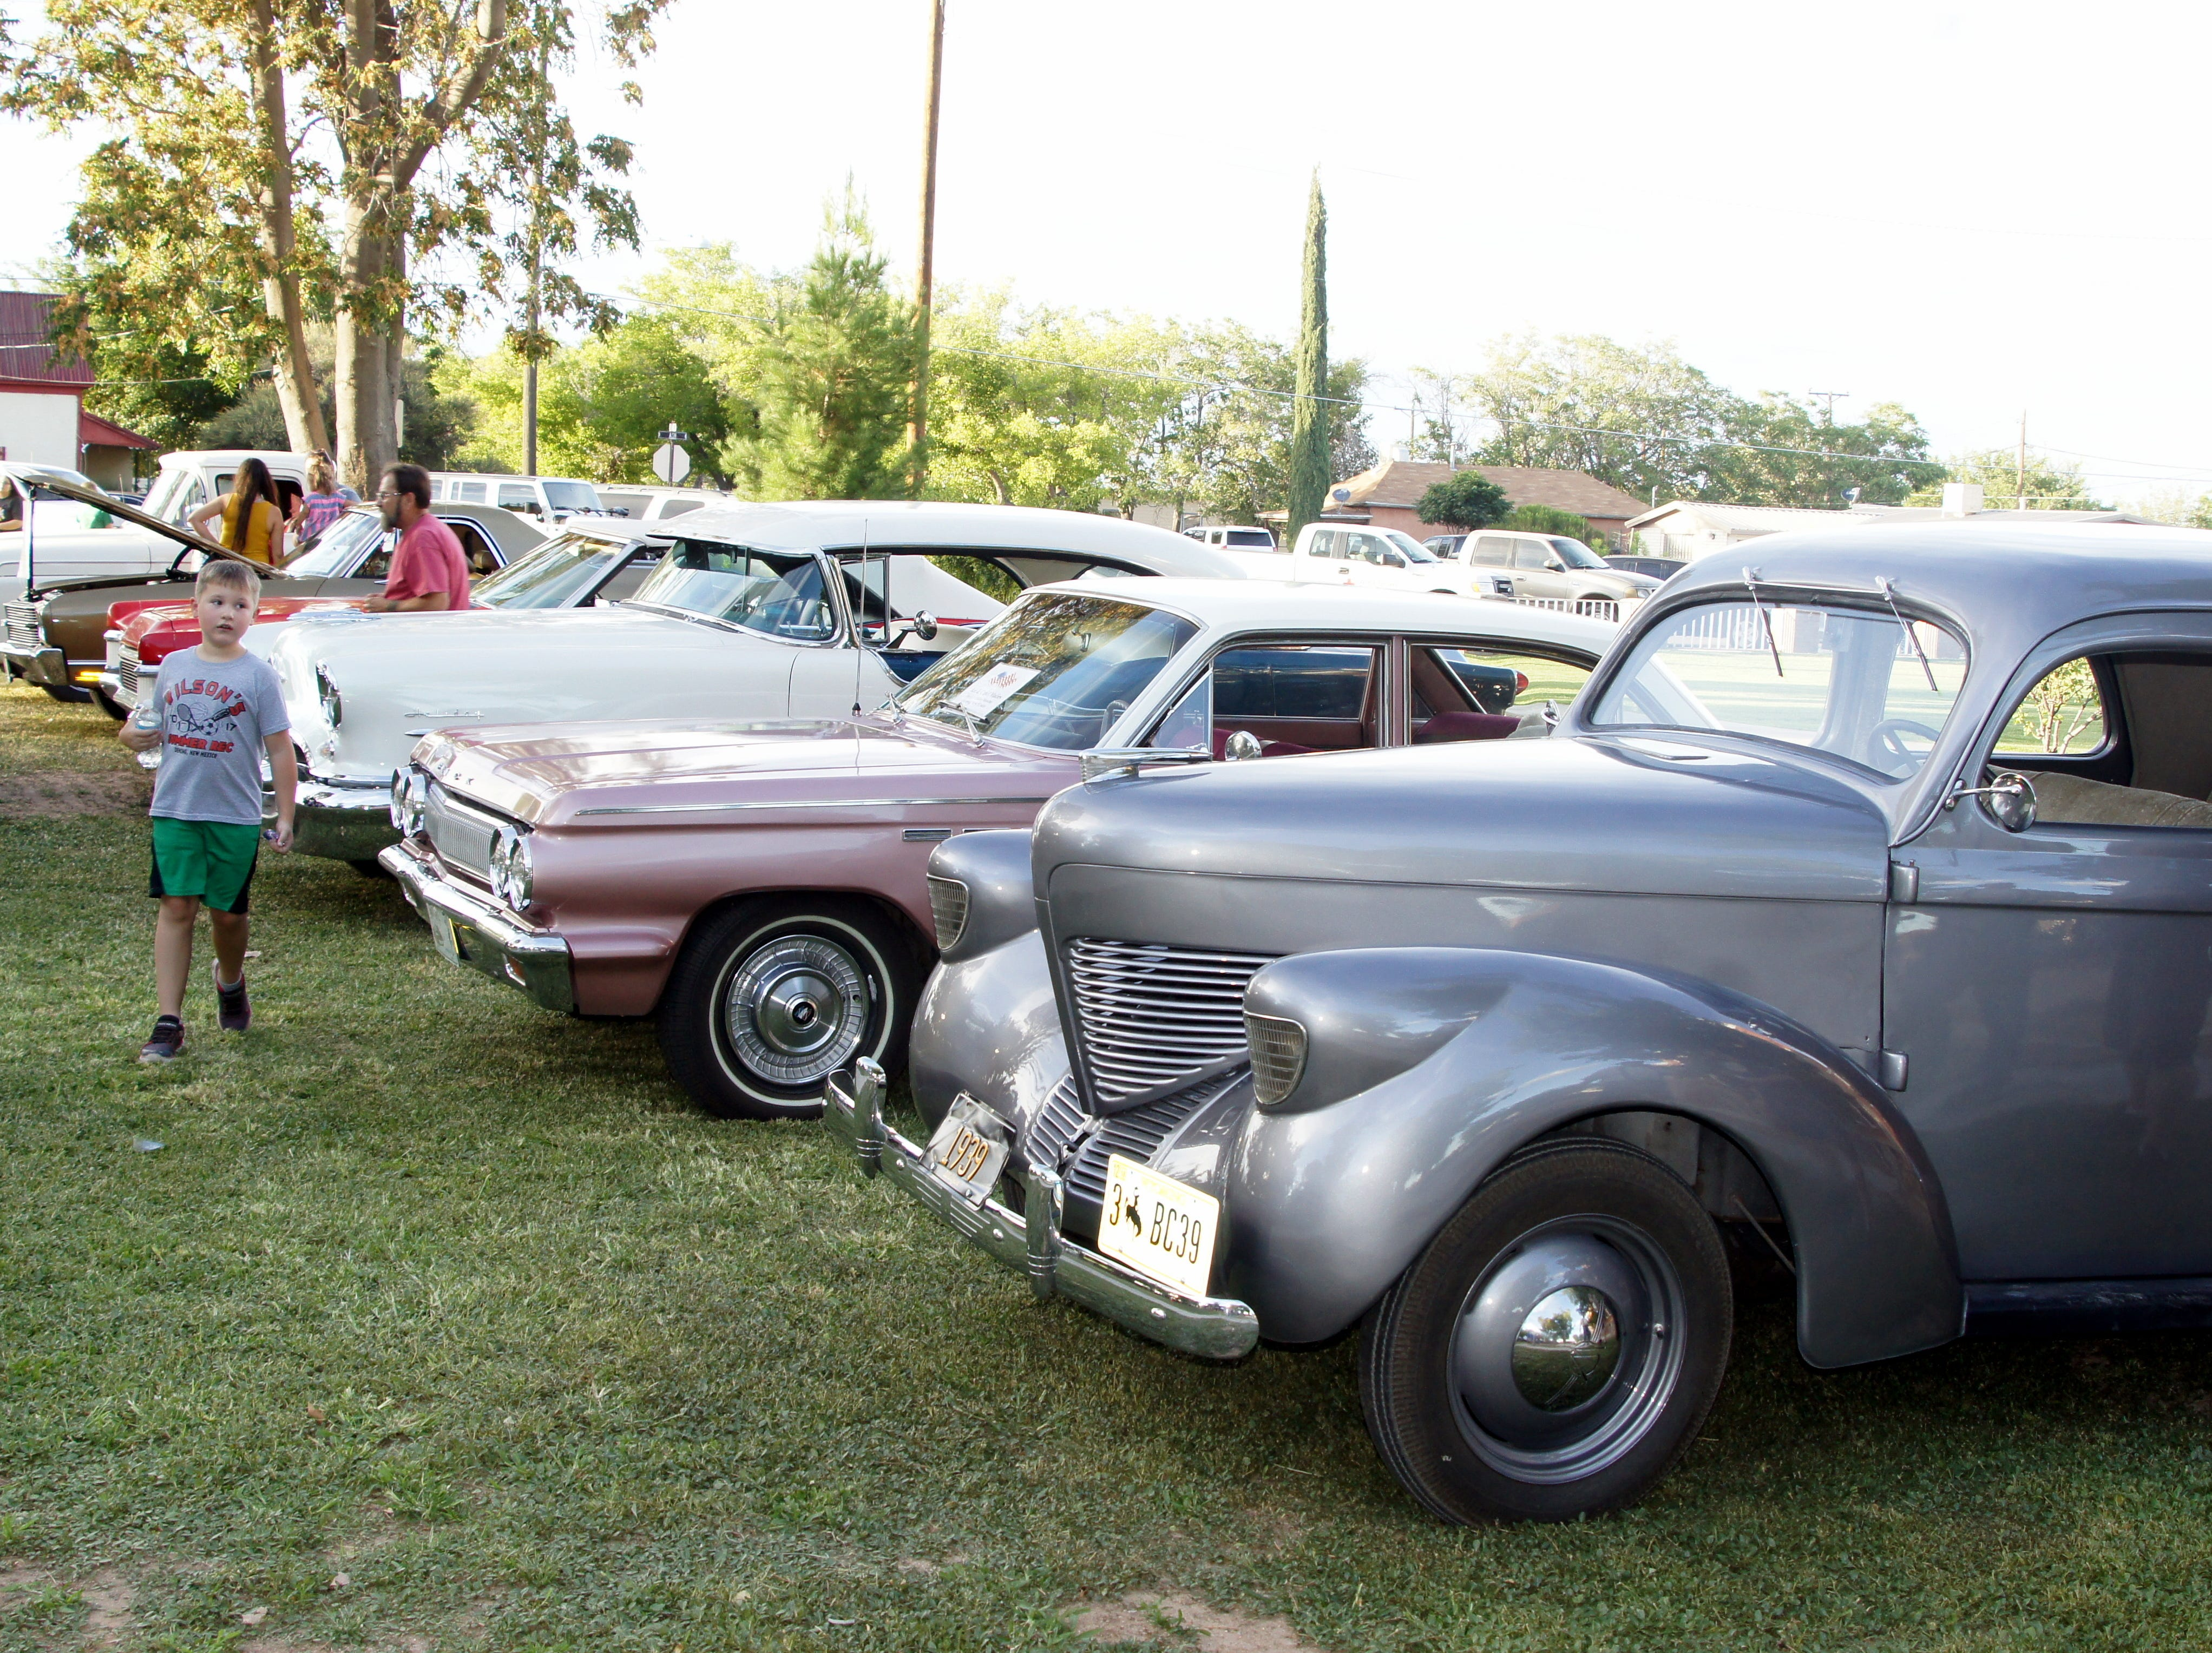 Members of the Desert Classics Car Club brought some of their Detroit steel to the Luna County Courthouse Park to help celebrate the second annual National Night Out in Deming, NM.